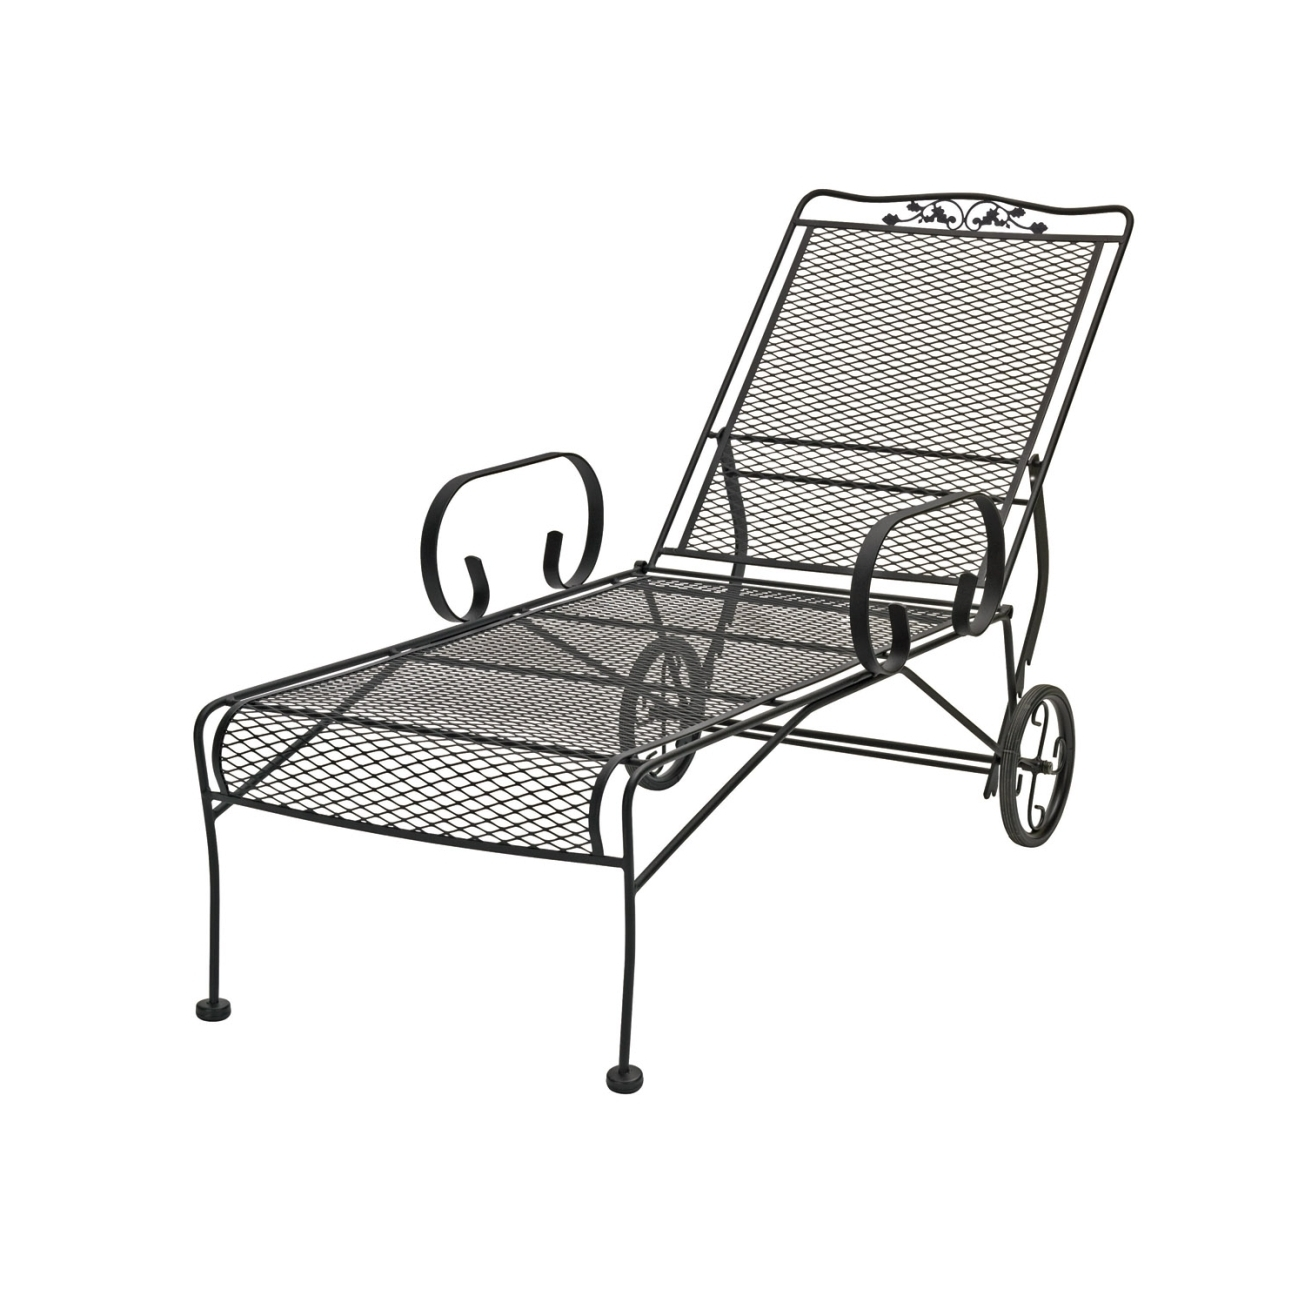 Outdoor : Lowes Patio Furniture Clearance Plastic Lounge Chairs Pertaining To Newest Cheap Outdoor Chaise Lounge Chairs (View 5 of 15)